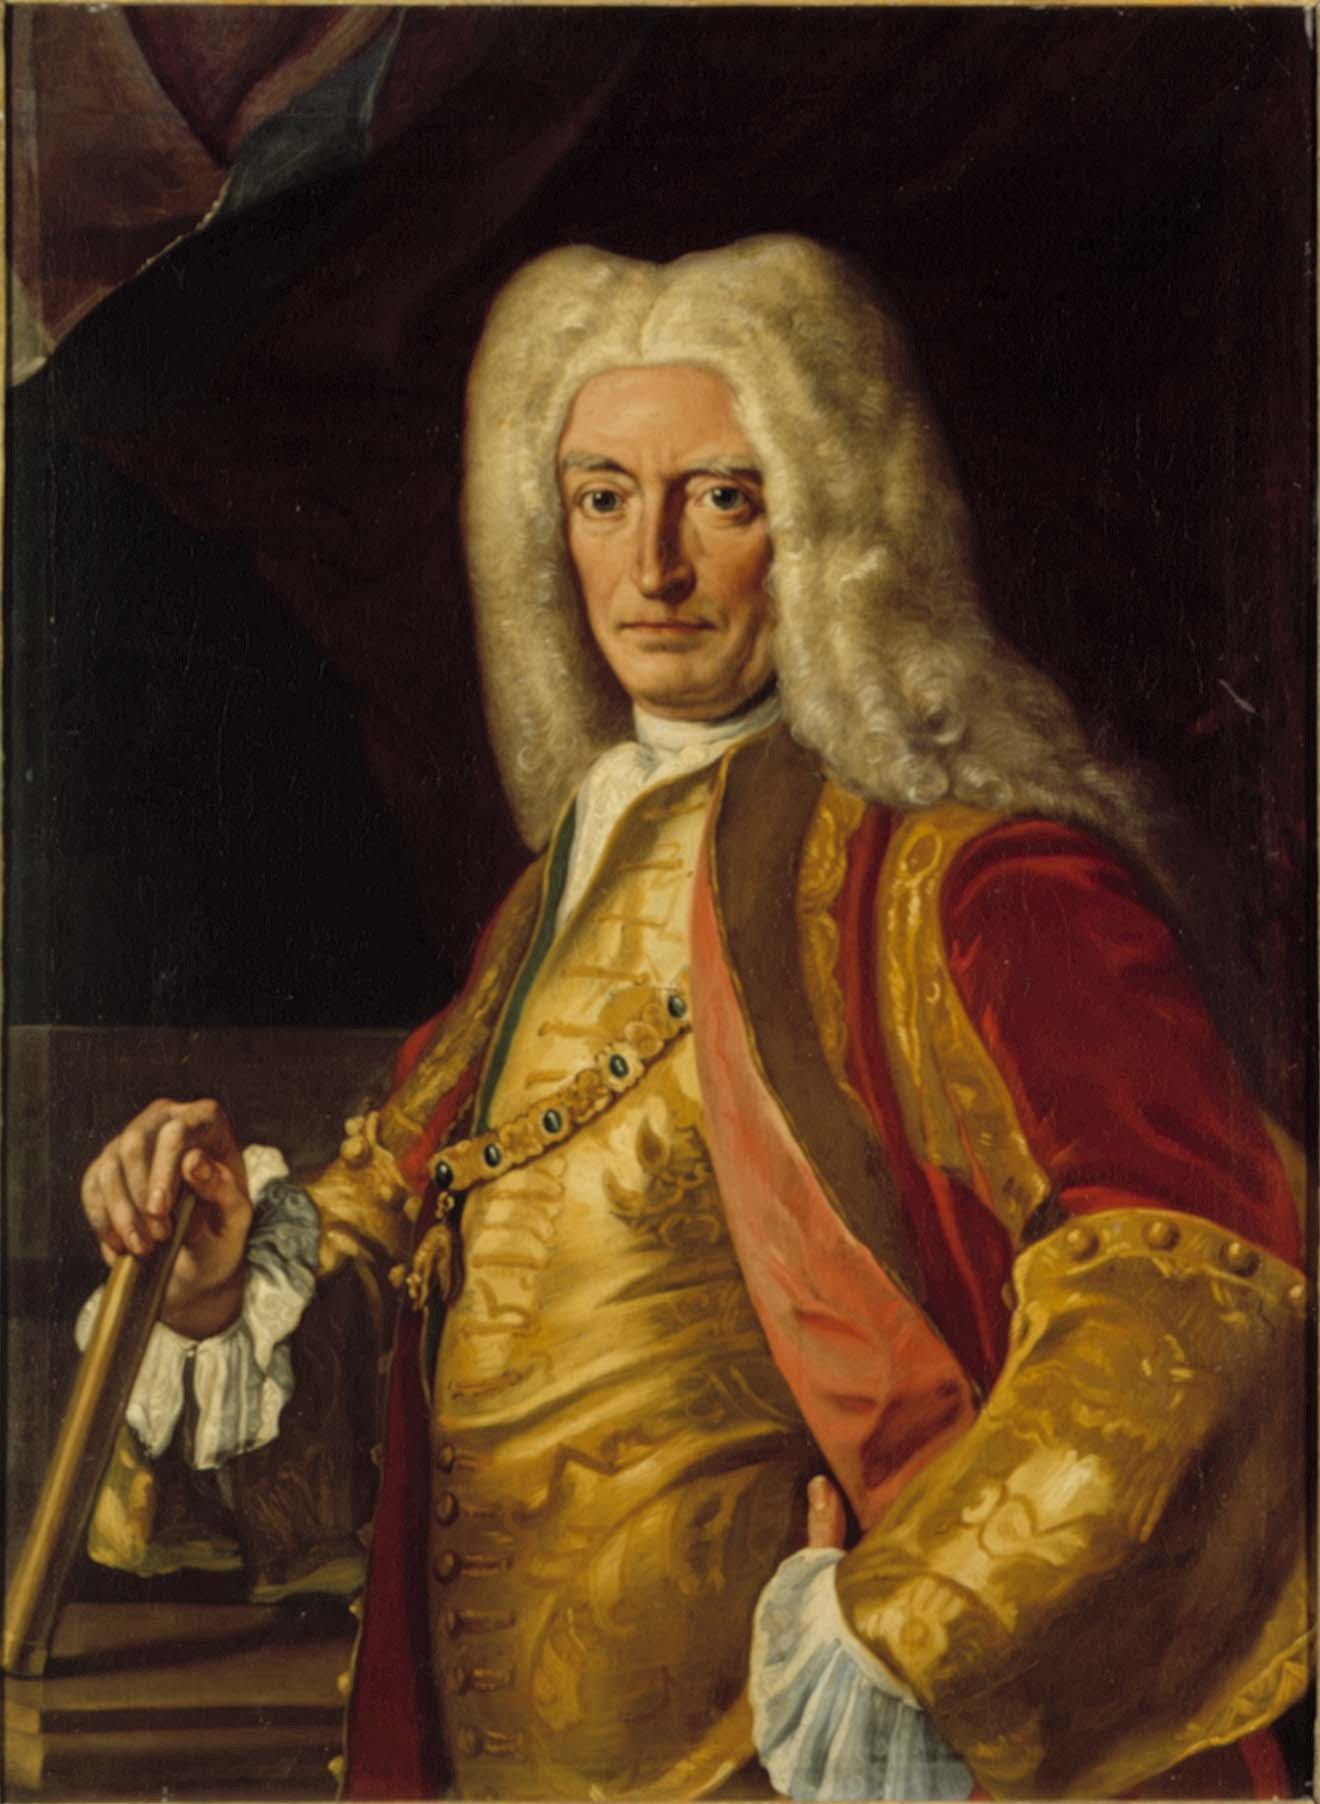 A portrait of the Viceroy of Naples, Count Harrach